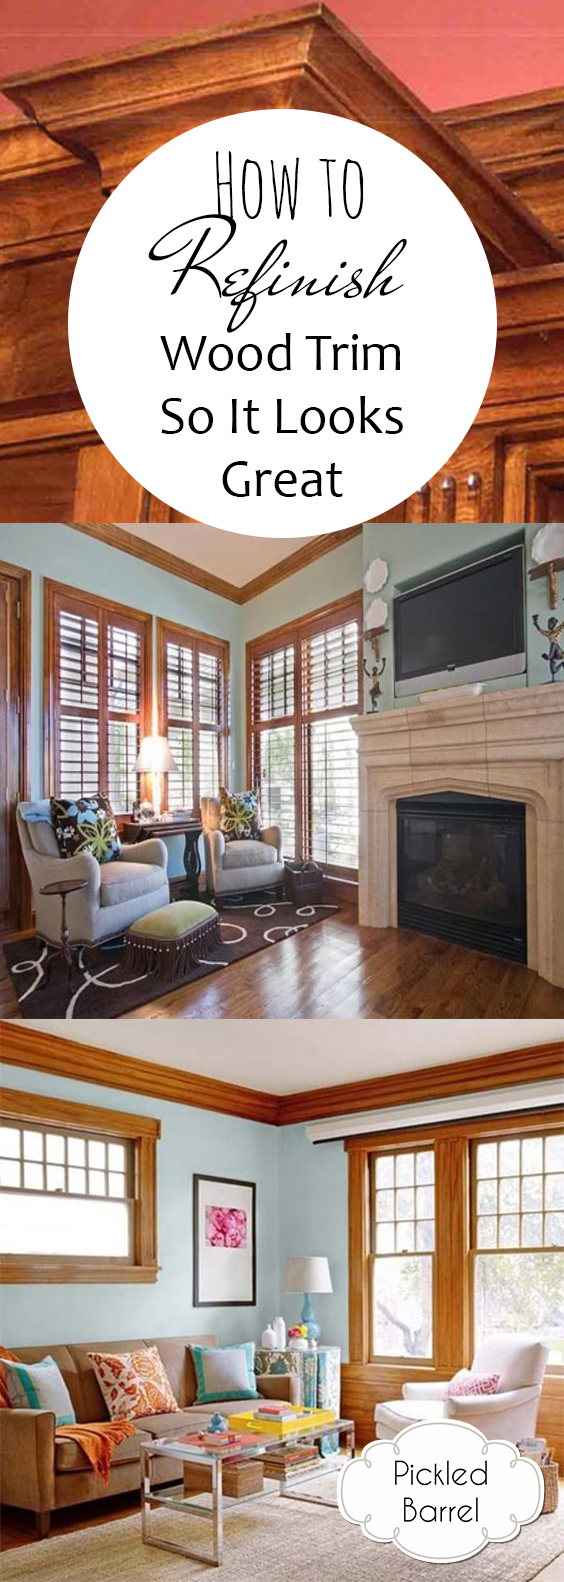 How to Refinish Wood Trim So It Looks Great| How to Refinish Wood, Refinishing Wood Trim, Fast Ways to Refinish Wood Trim, DIY Home, DIY Home Decor, DIY Home Improvement, Projects, Easy Home Improvement Projects, Simple Projects for the Home, Popular Pin